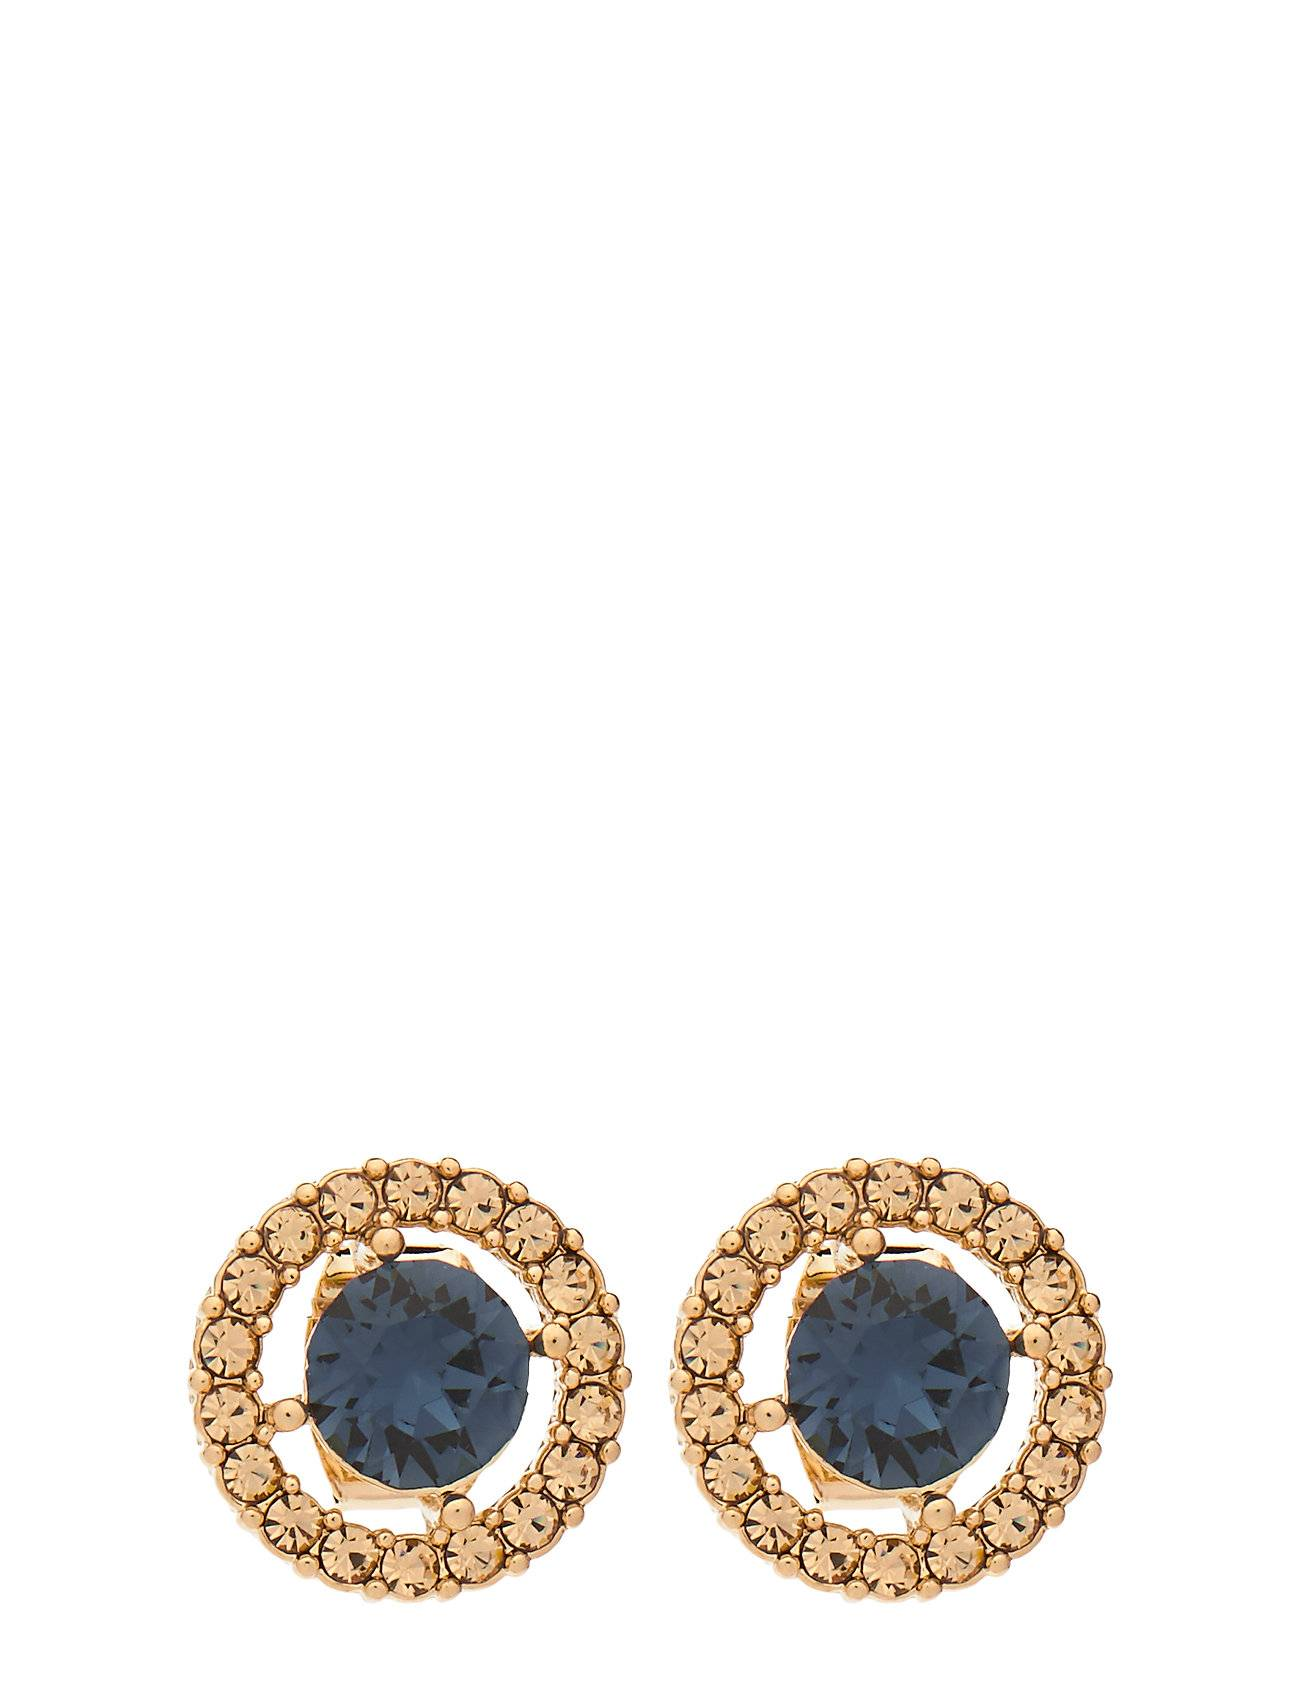 LILY AND ROSE Miss Miranda Earrings - Golden Blue Accessories Jewellery Earrings Studs Kulta LILY AND ROSE